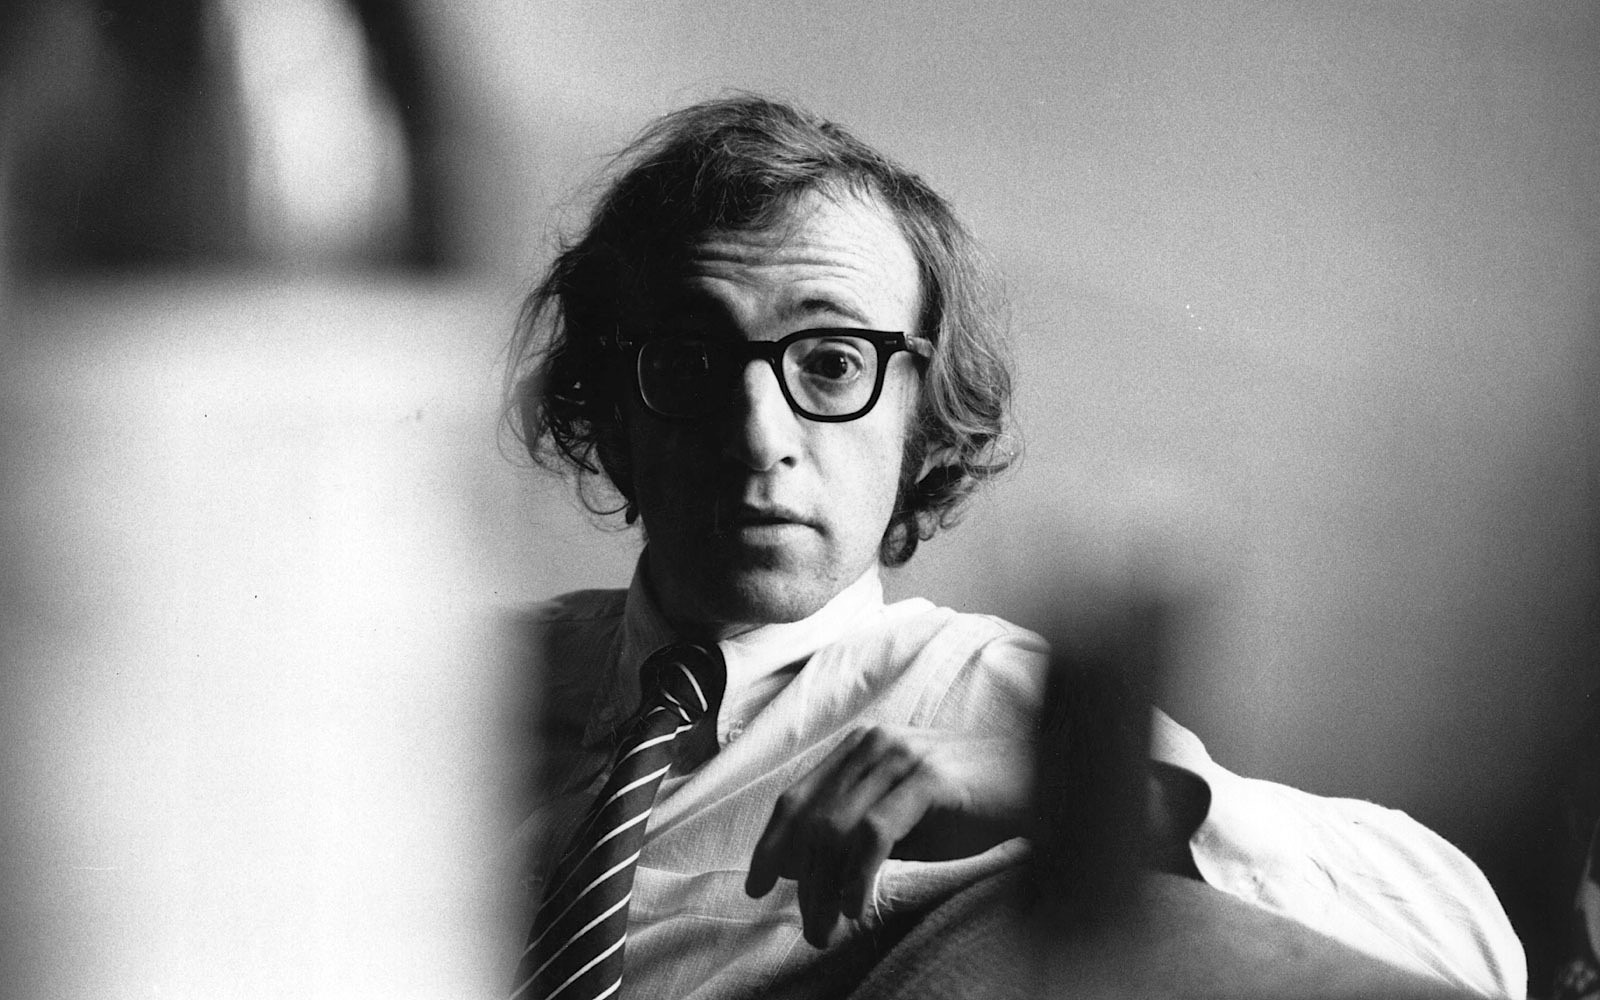 http://lounge.obviousmag.org/quimera/2014/08/30/woody-allen-4169.jpg